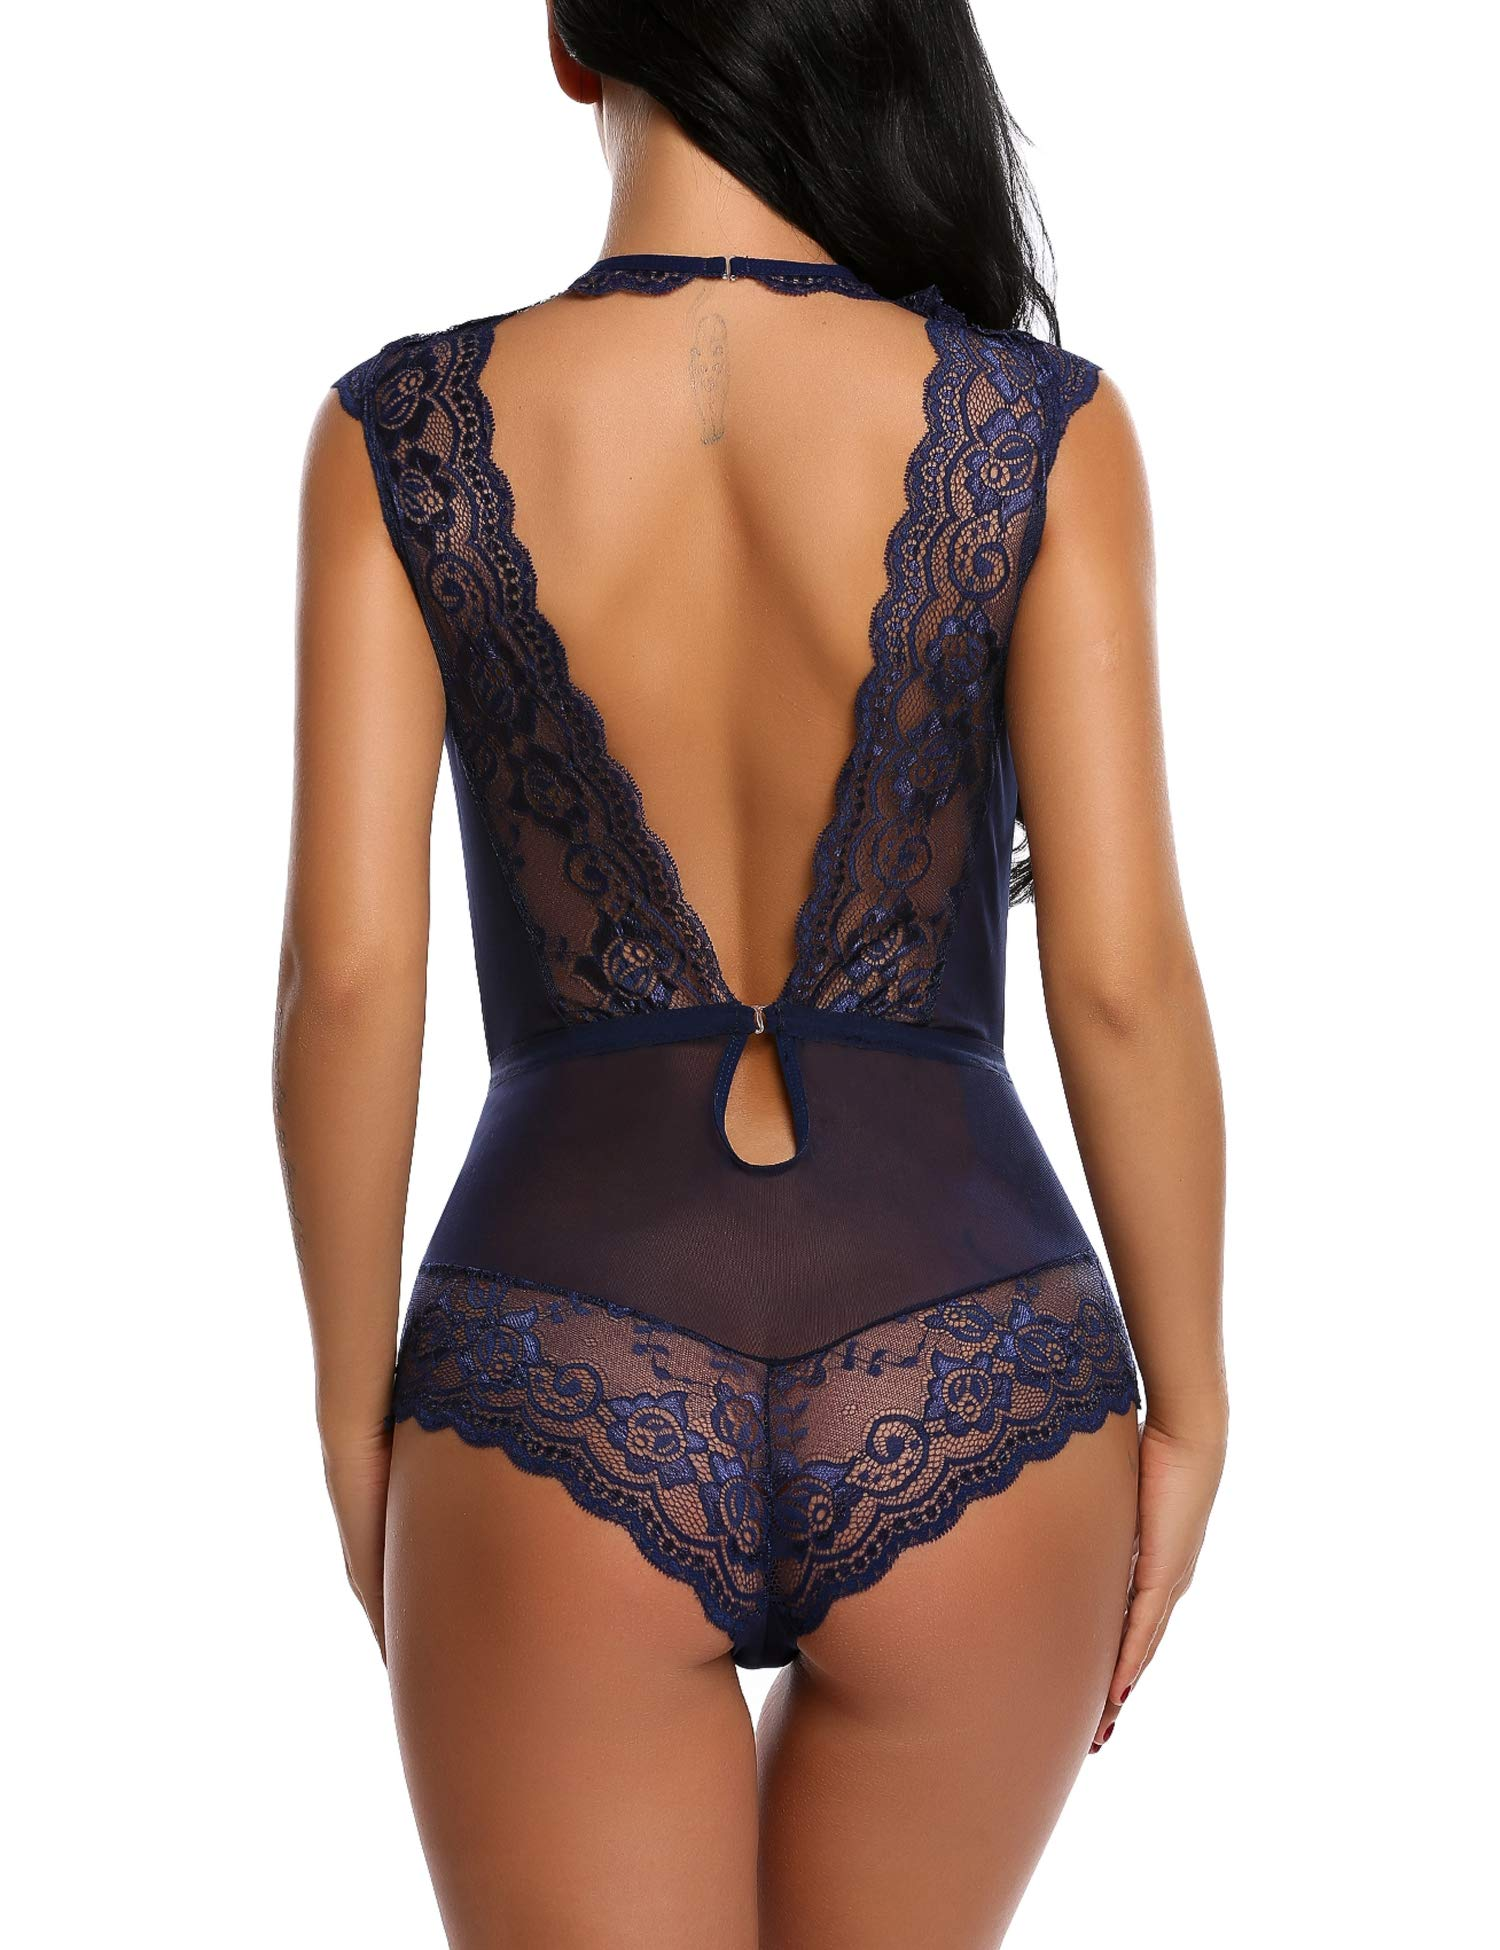 Avidlove Women Sexy Babydoll Lingerie Lace Outfit Teddy(Dark Blue,M)